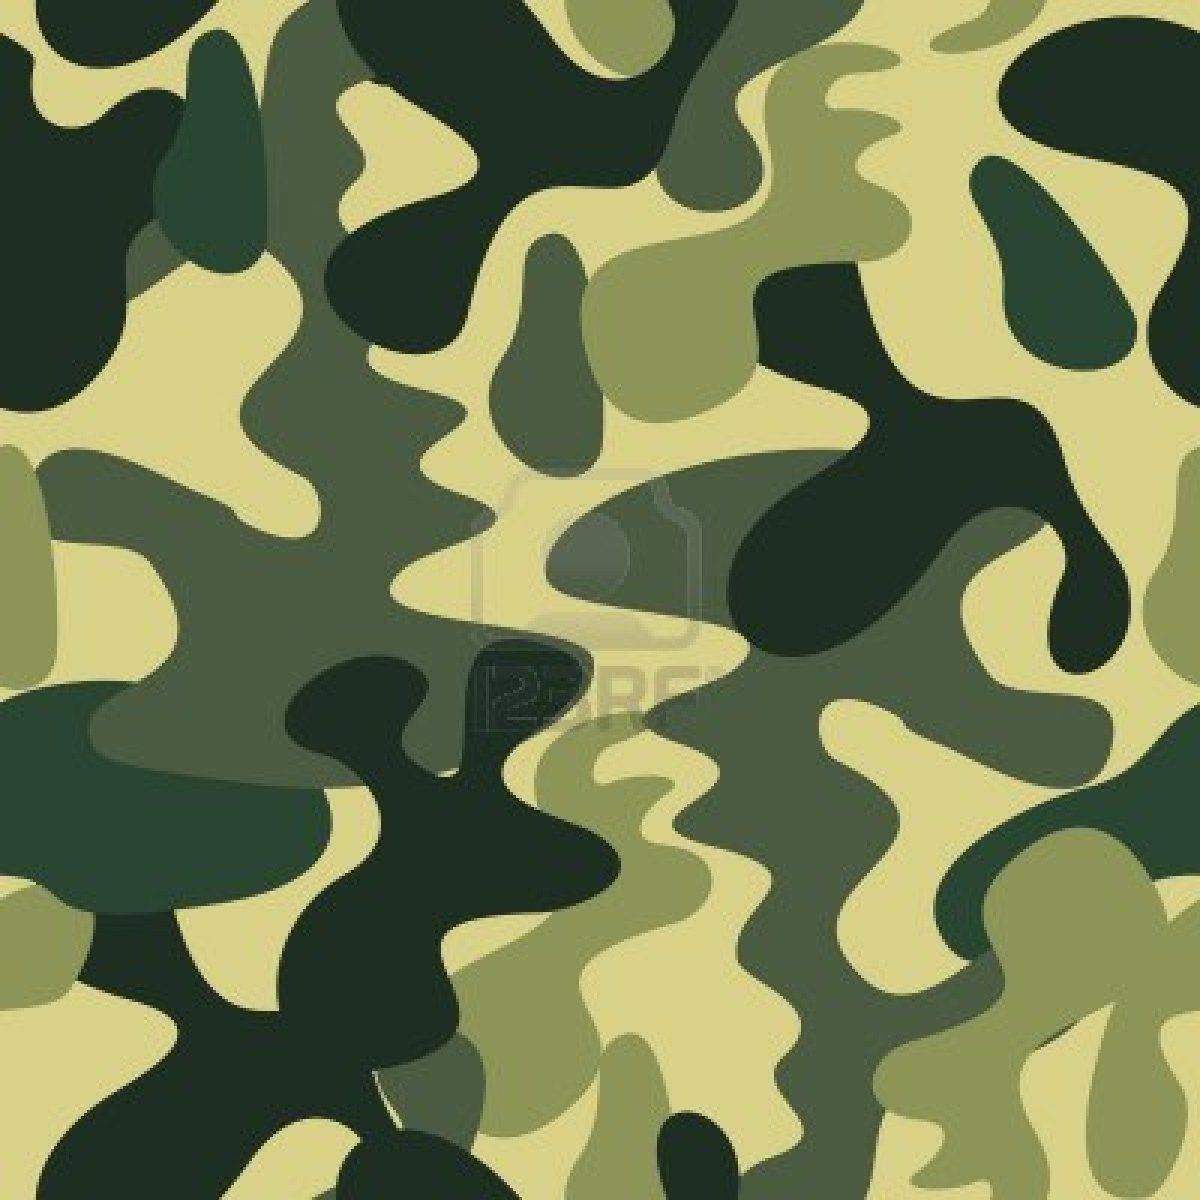 1200x1200 Pin By Philippe Caillaud On Camouflage Camouflage